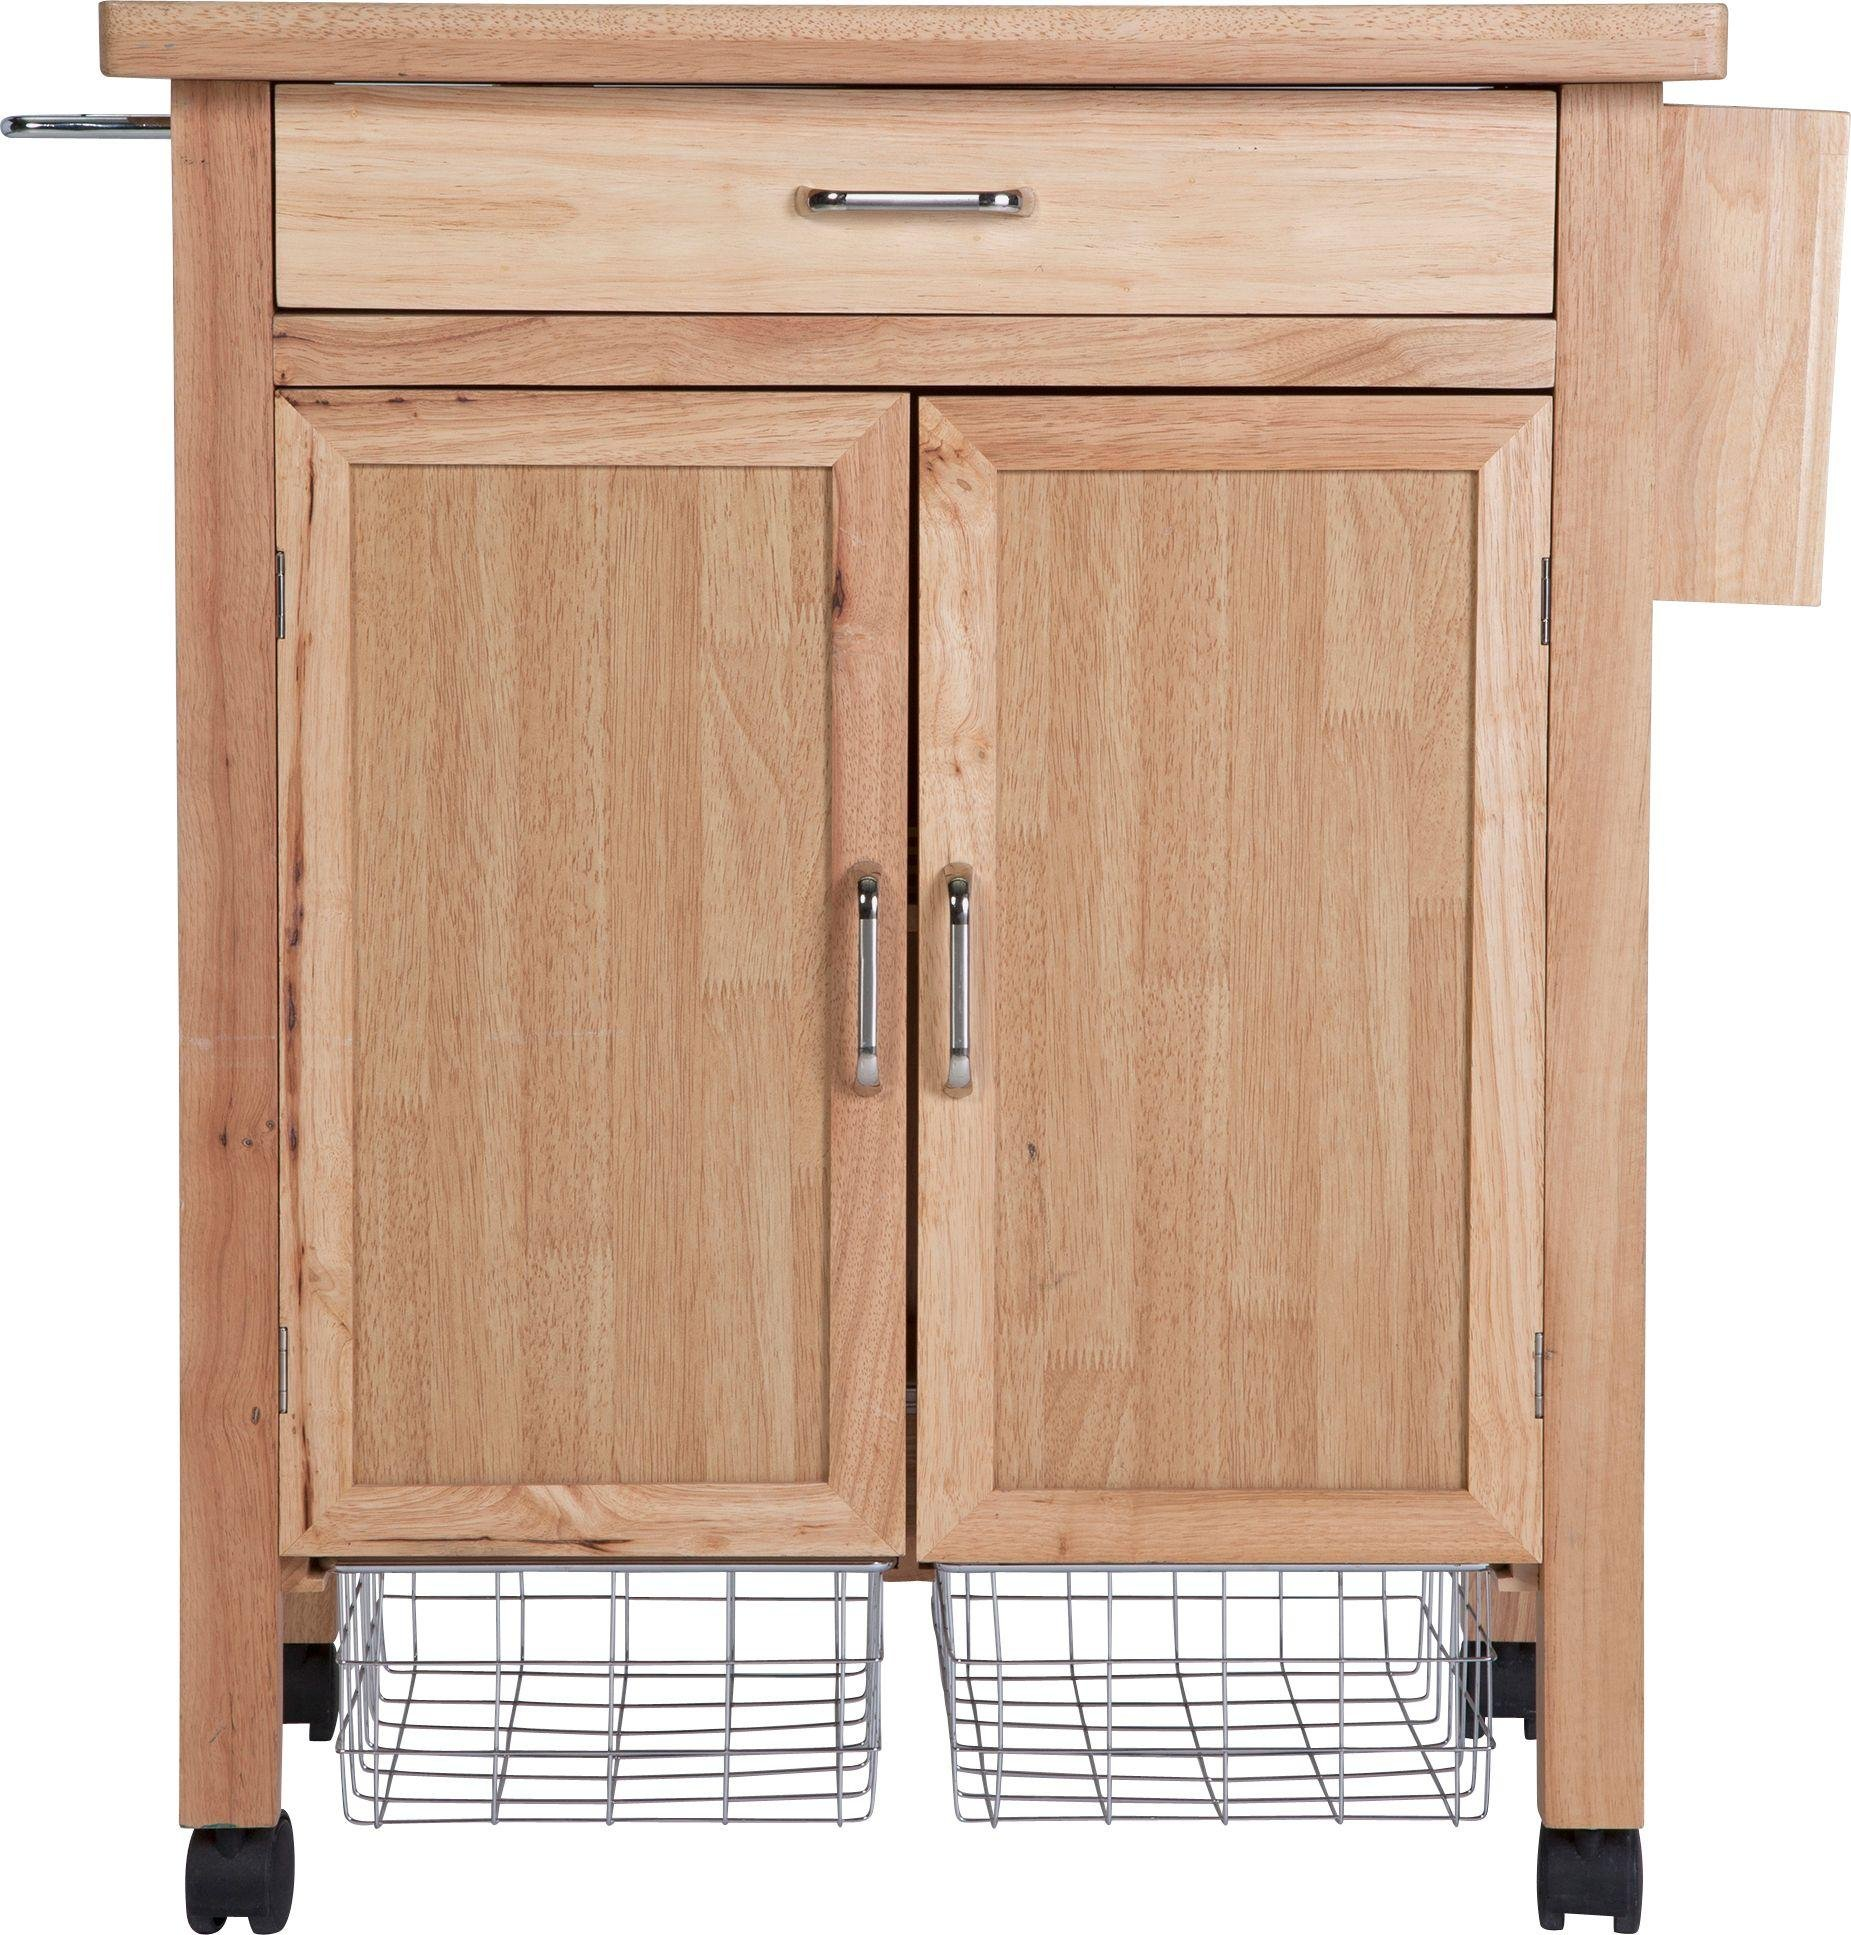 Heart of House Tollerton Wooden Kitchen Trolley.